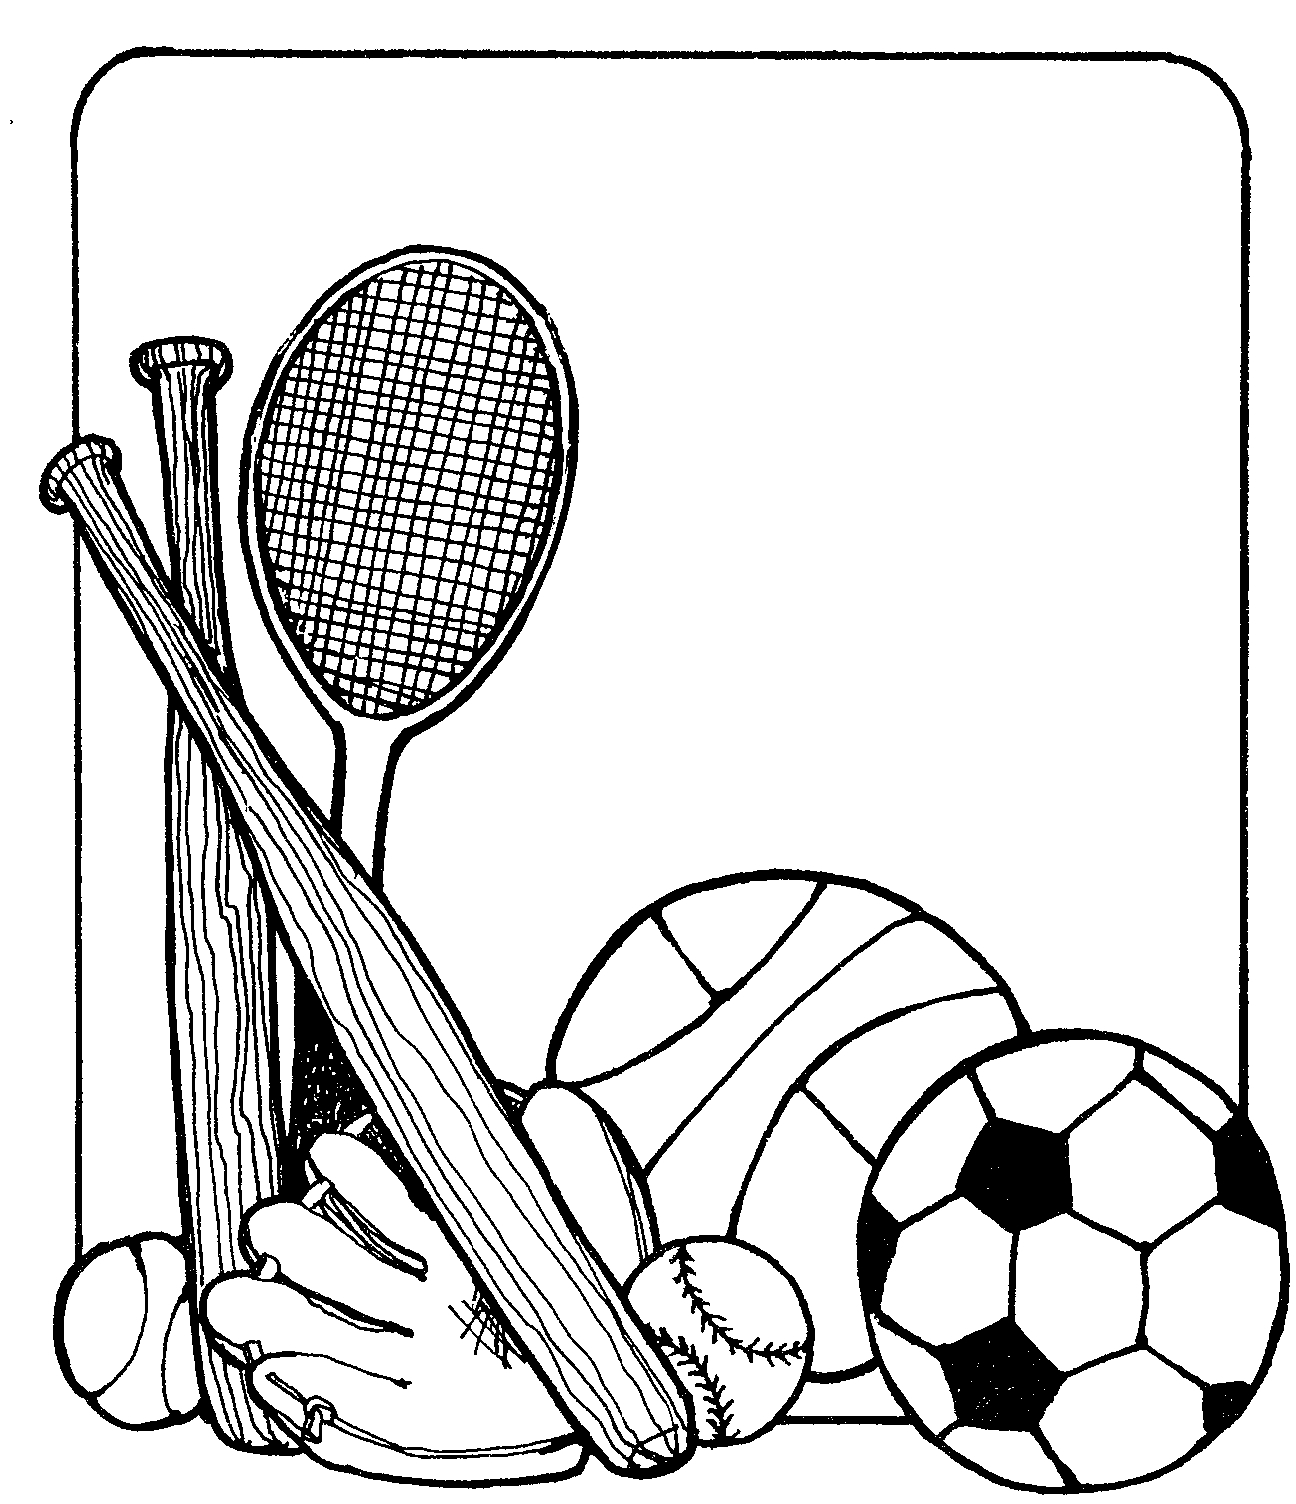 Sports Equipment Clip Art | Clipart Panda - Free Clipart Images